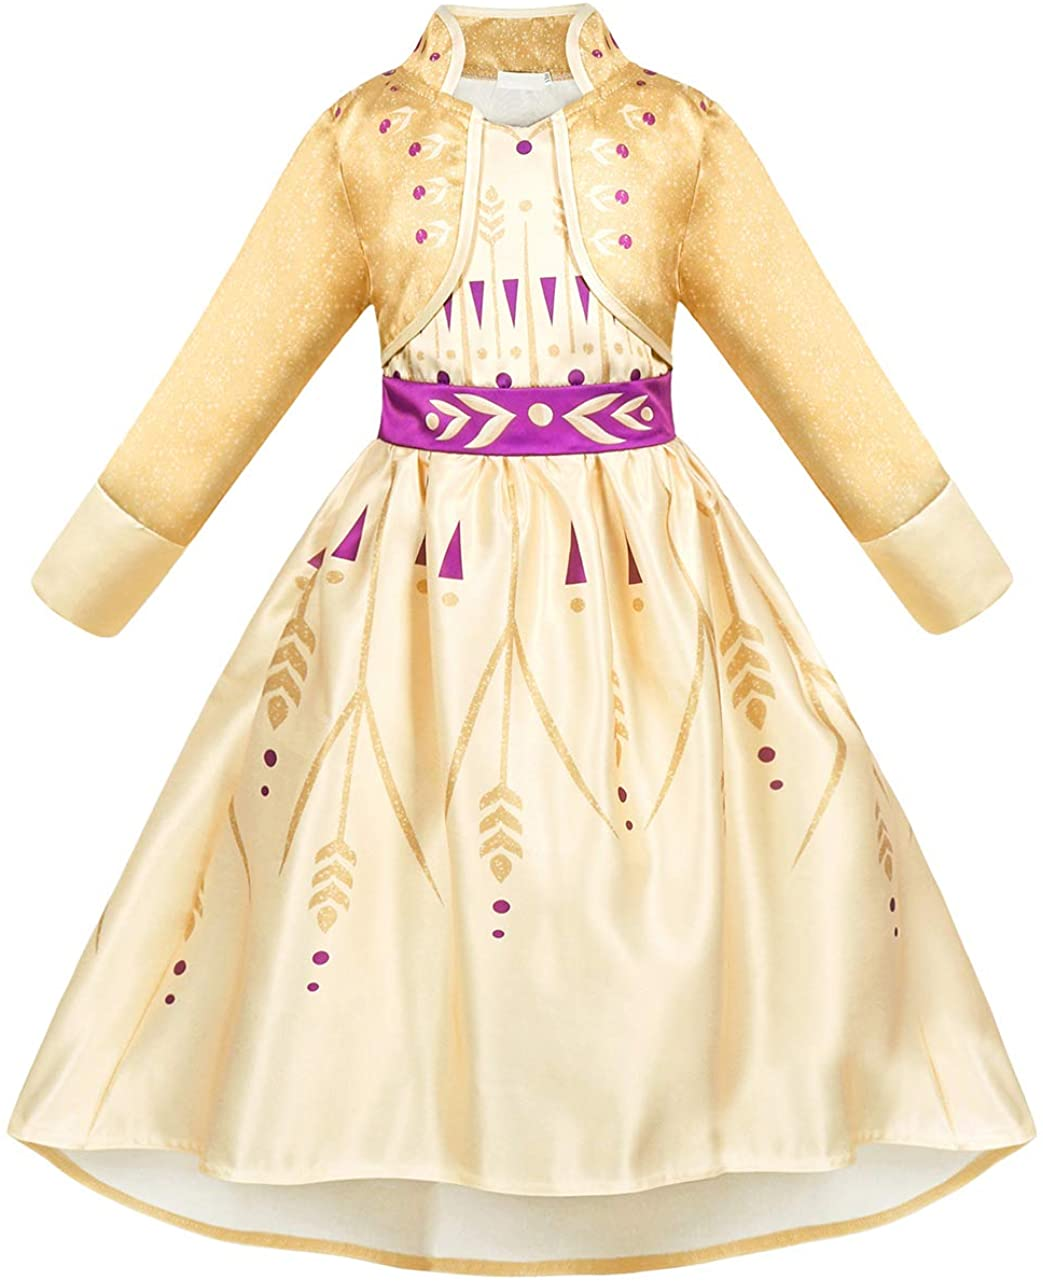 HenzWorld Girls Dresses Snow Princess Costume Party Halloween Cosplay Outfits Beige Kids 3-8 Years